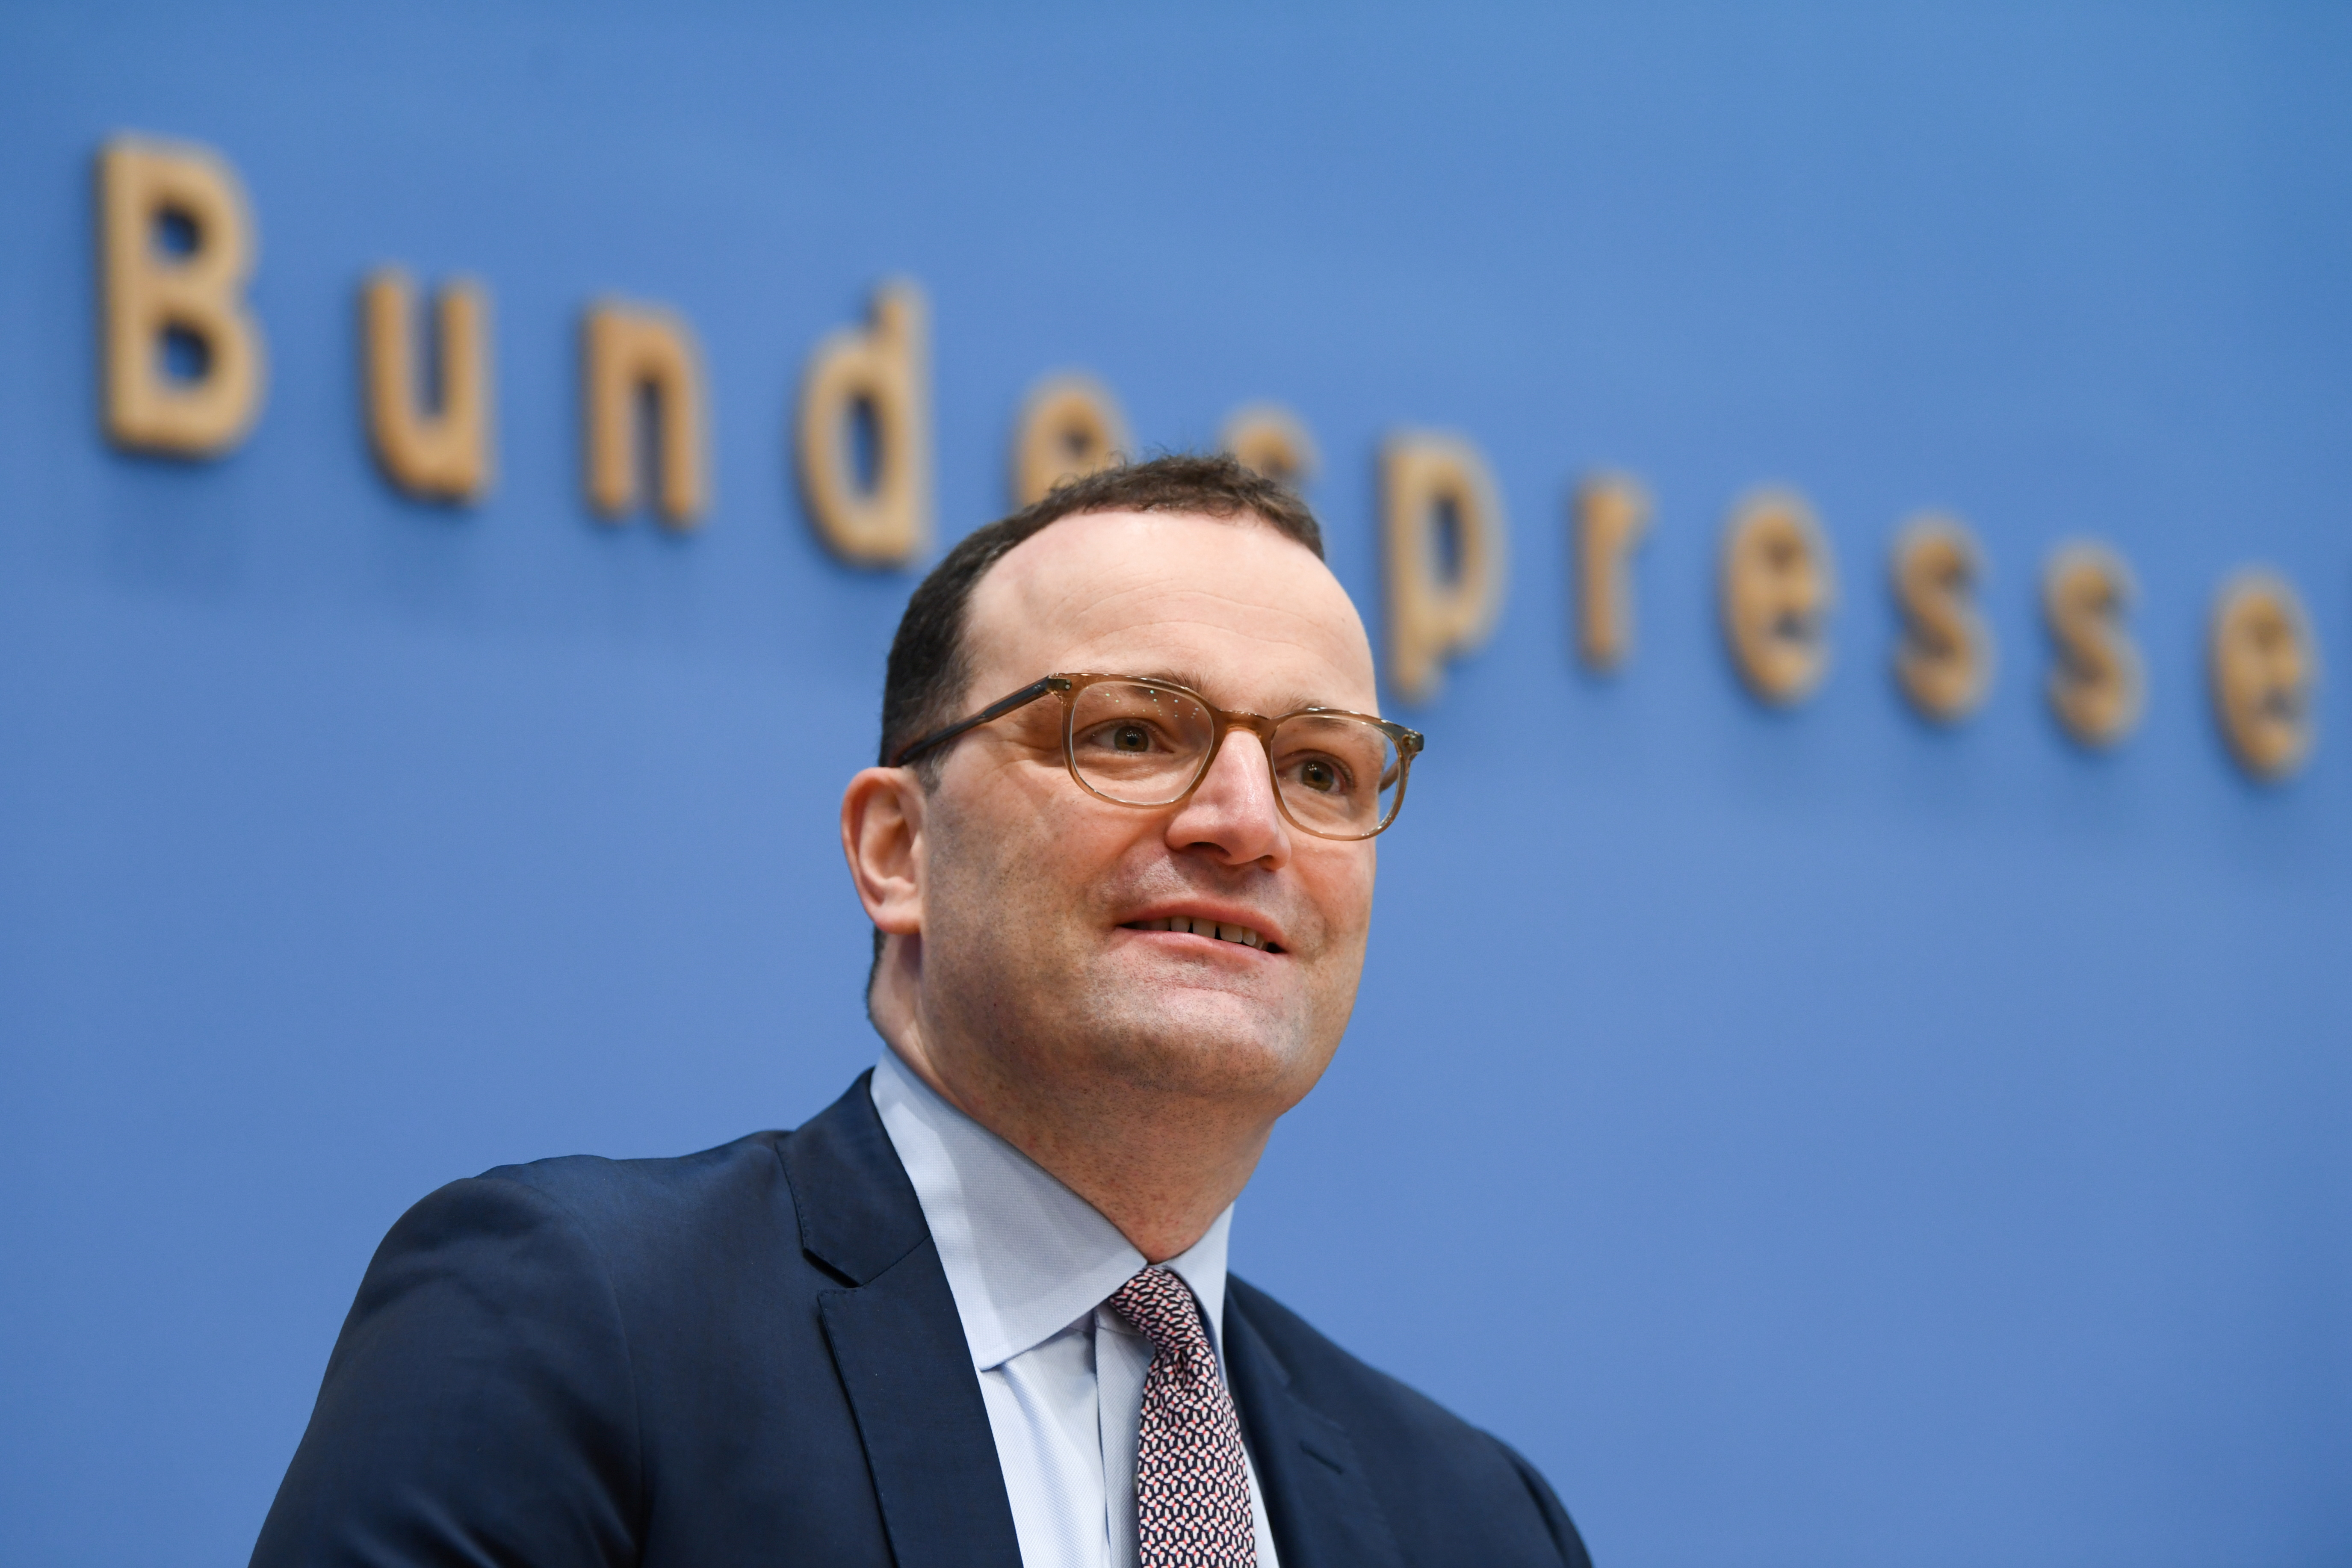 German Health Minister Jens Spahn attends a news conference on the current coronavirus disease (COVID-19) situation in Berlin, Germany May 7, 2021. REUTERS/Annegret Hilse/Pool